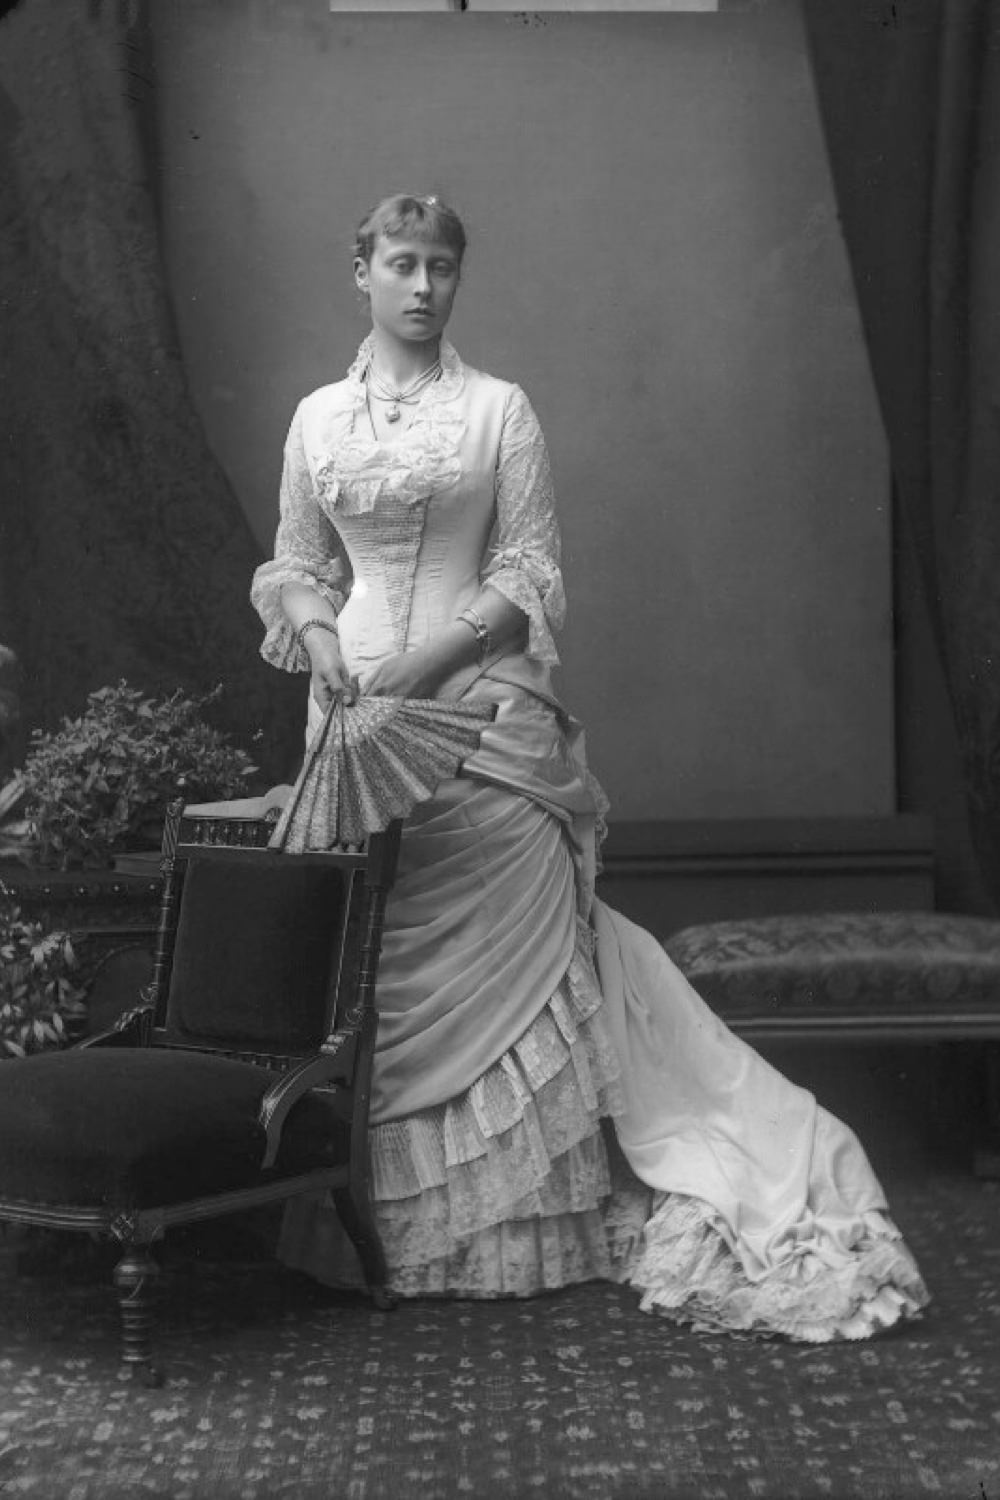 Victoria of Hesse and by Rhine (1863-1950)